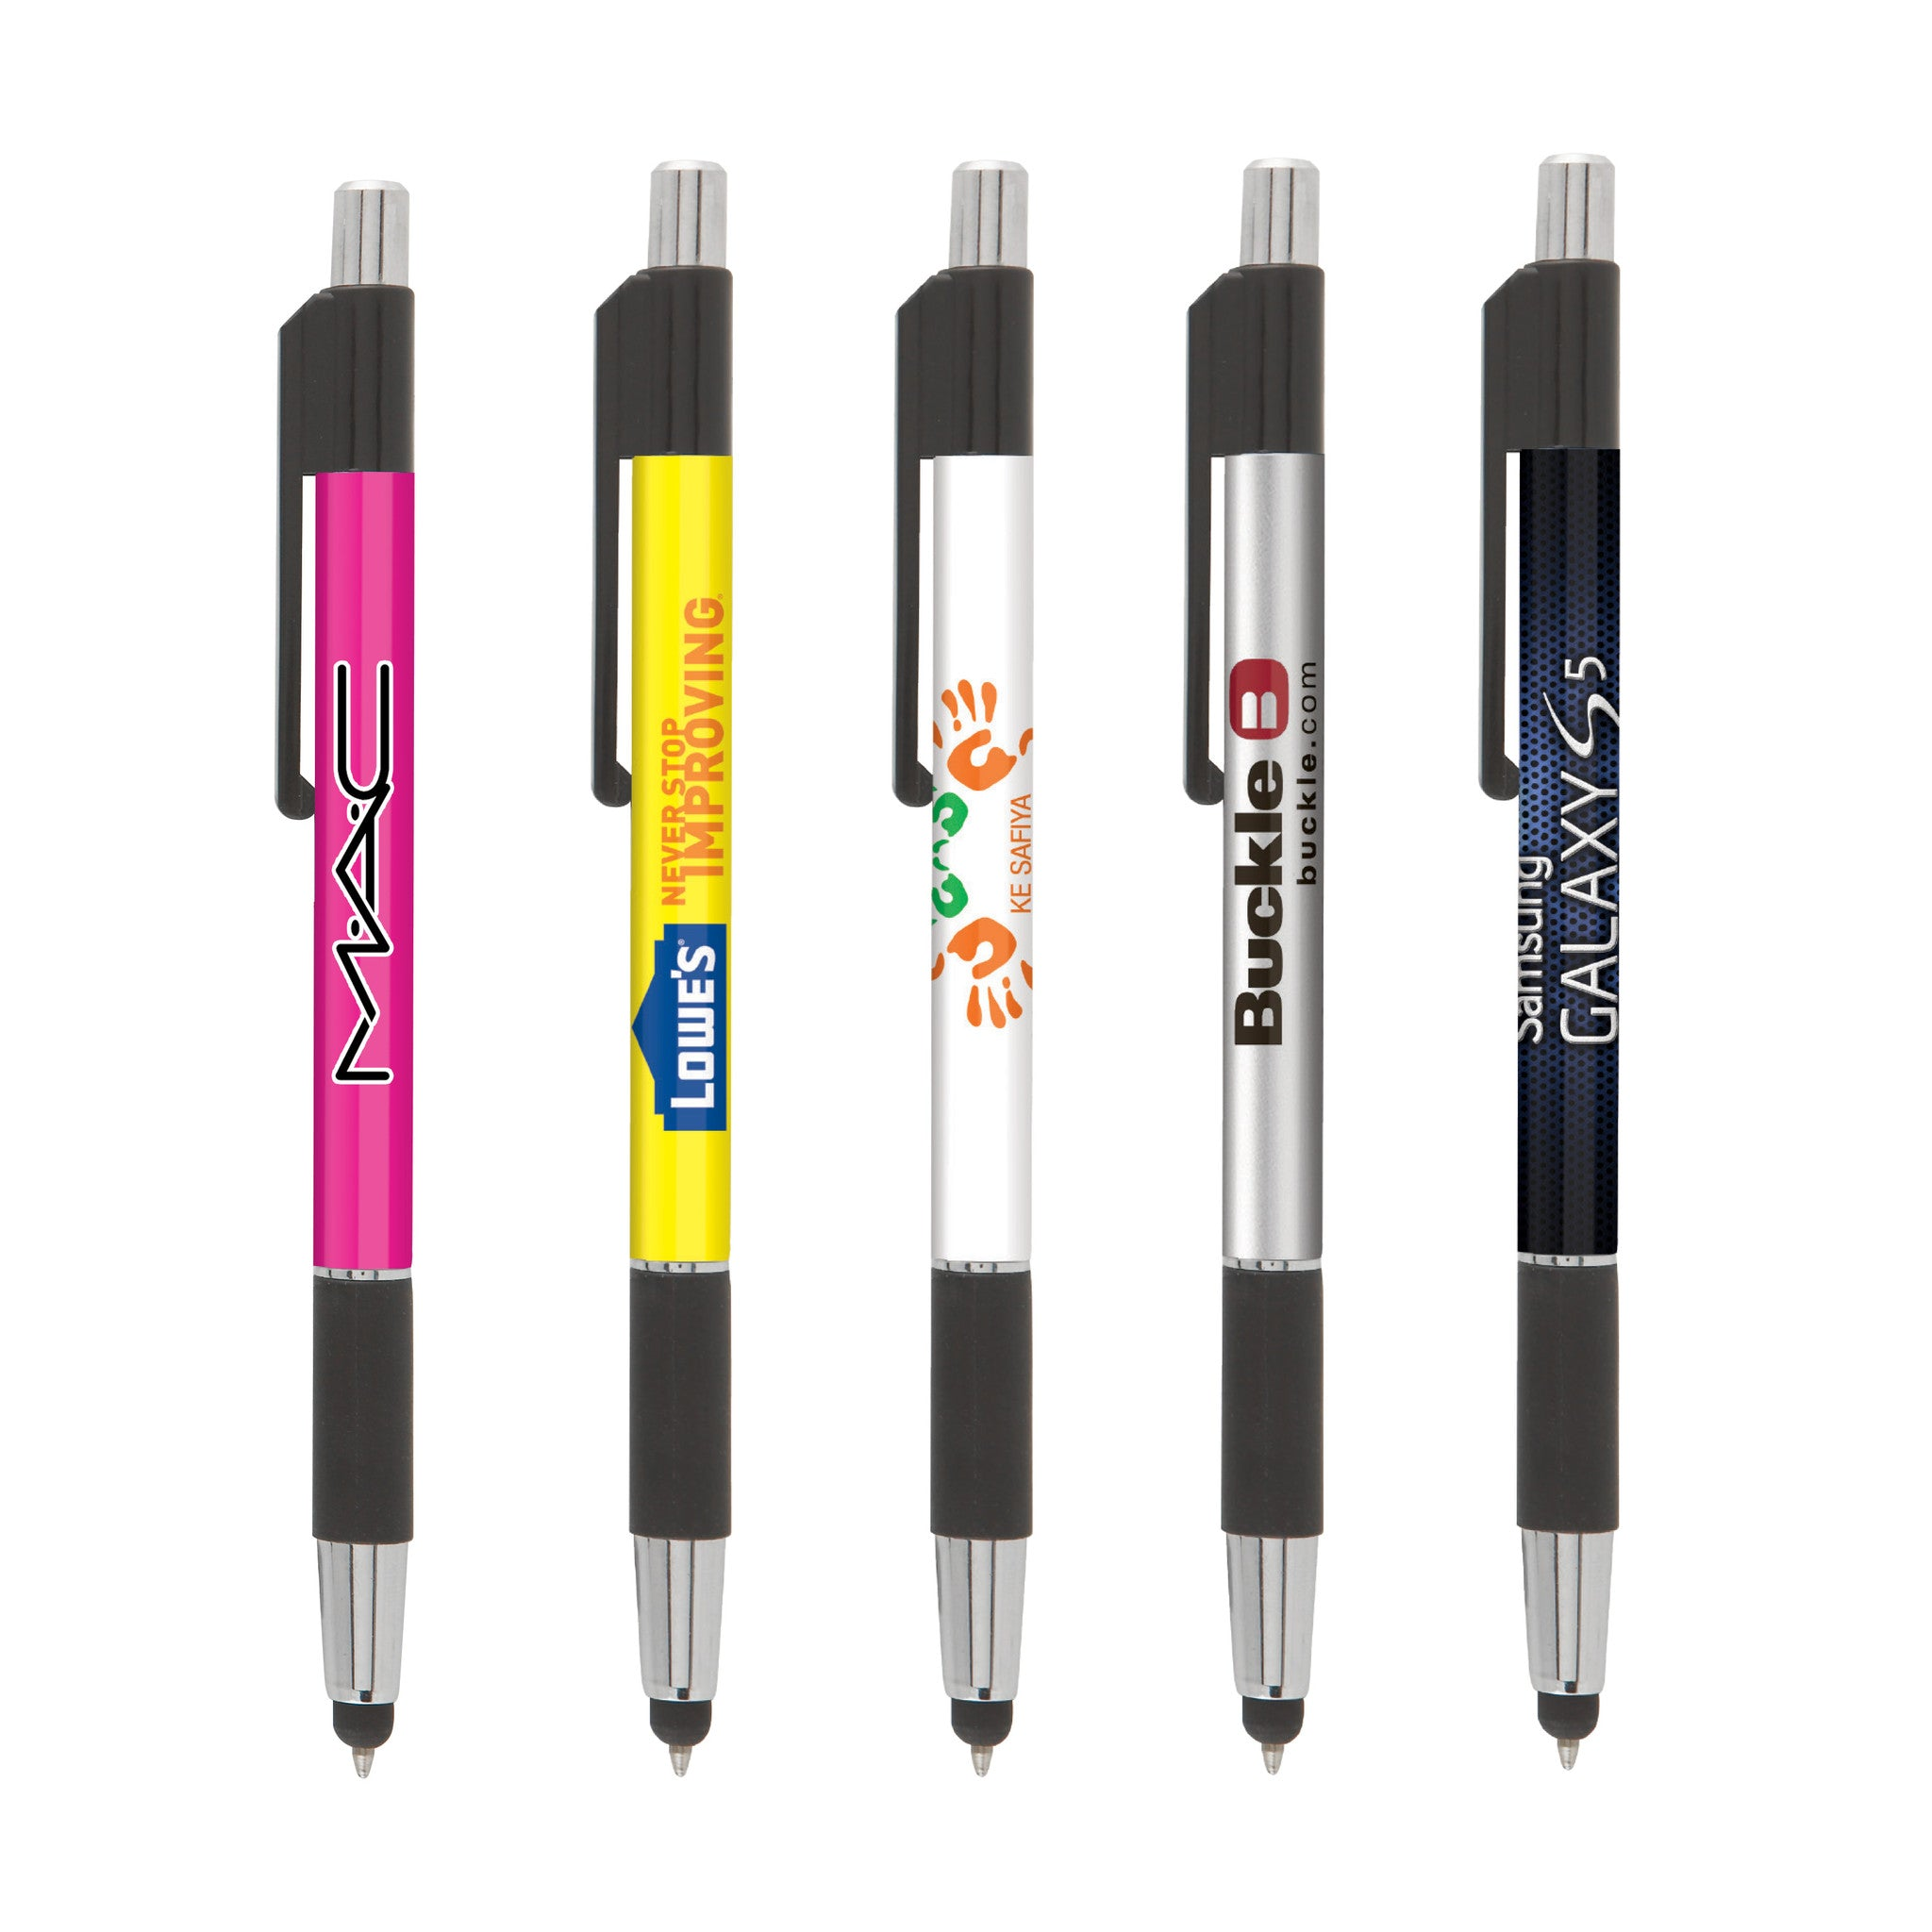 Slender Stylus Pen with Full Color Imprint